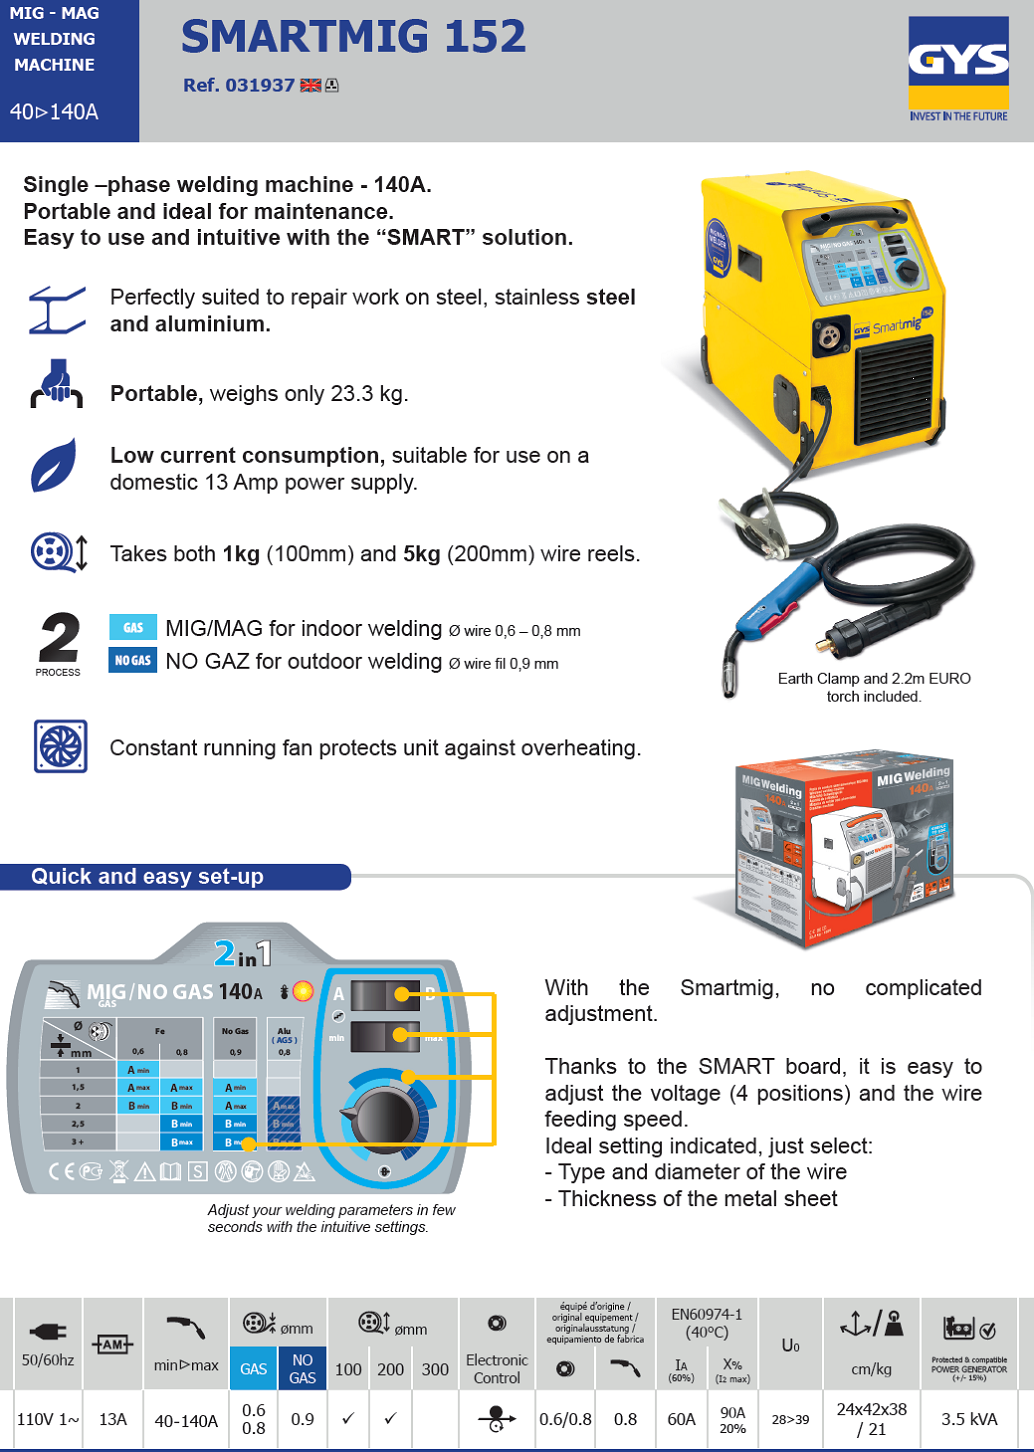 Gys Smartmig 152, Gas or no gas Automotive welder online from wasp ...